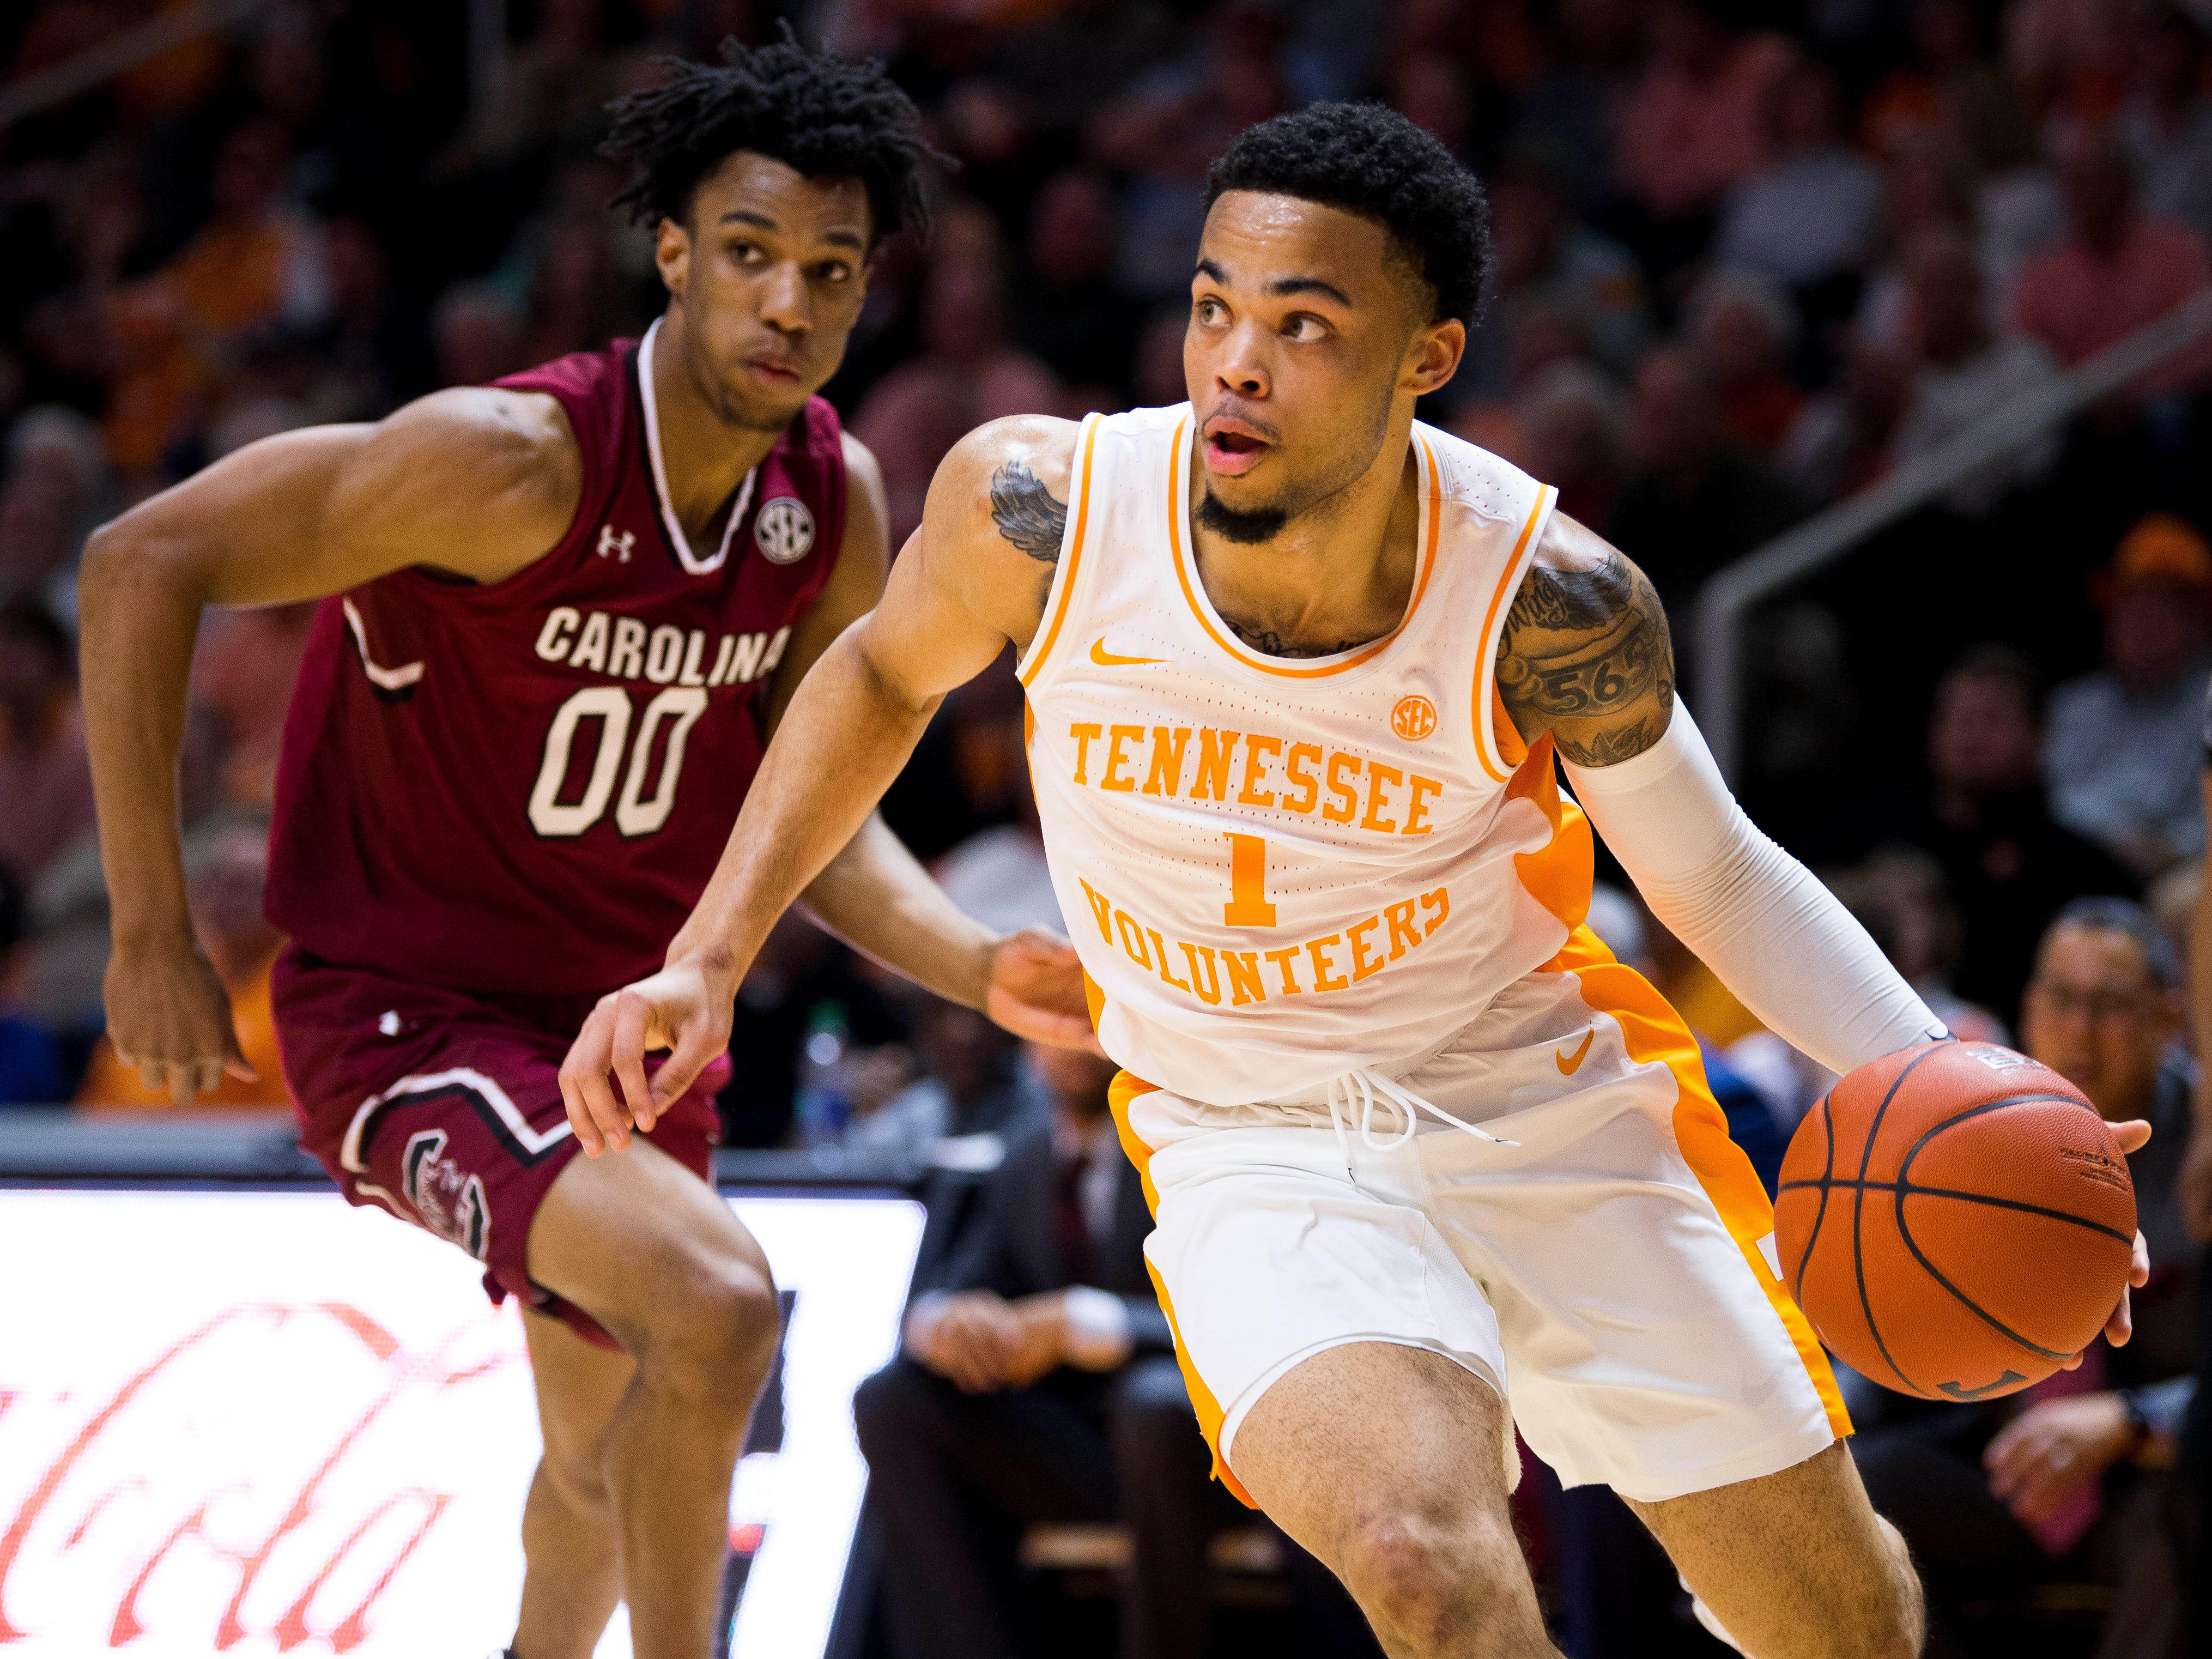 Tennessee guard Lamonte Turner (1) drives past South Carolina guard A.J. Lawson (0) during Tennessee's home SEC game against South Carolina at Thompson-Boling Arena in Knoxville on Wednesday, February 13, 2019.